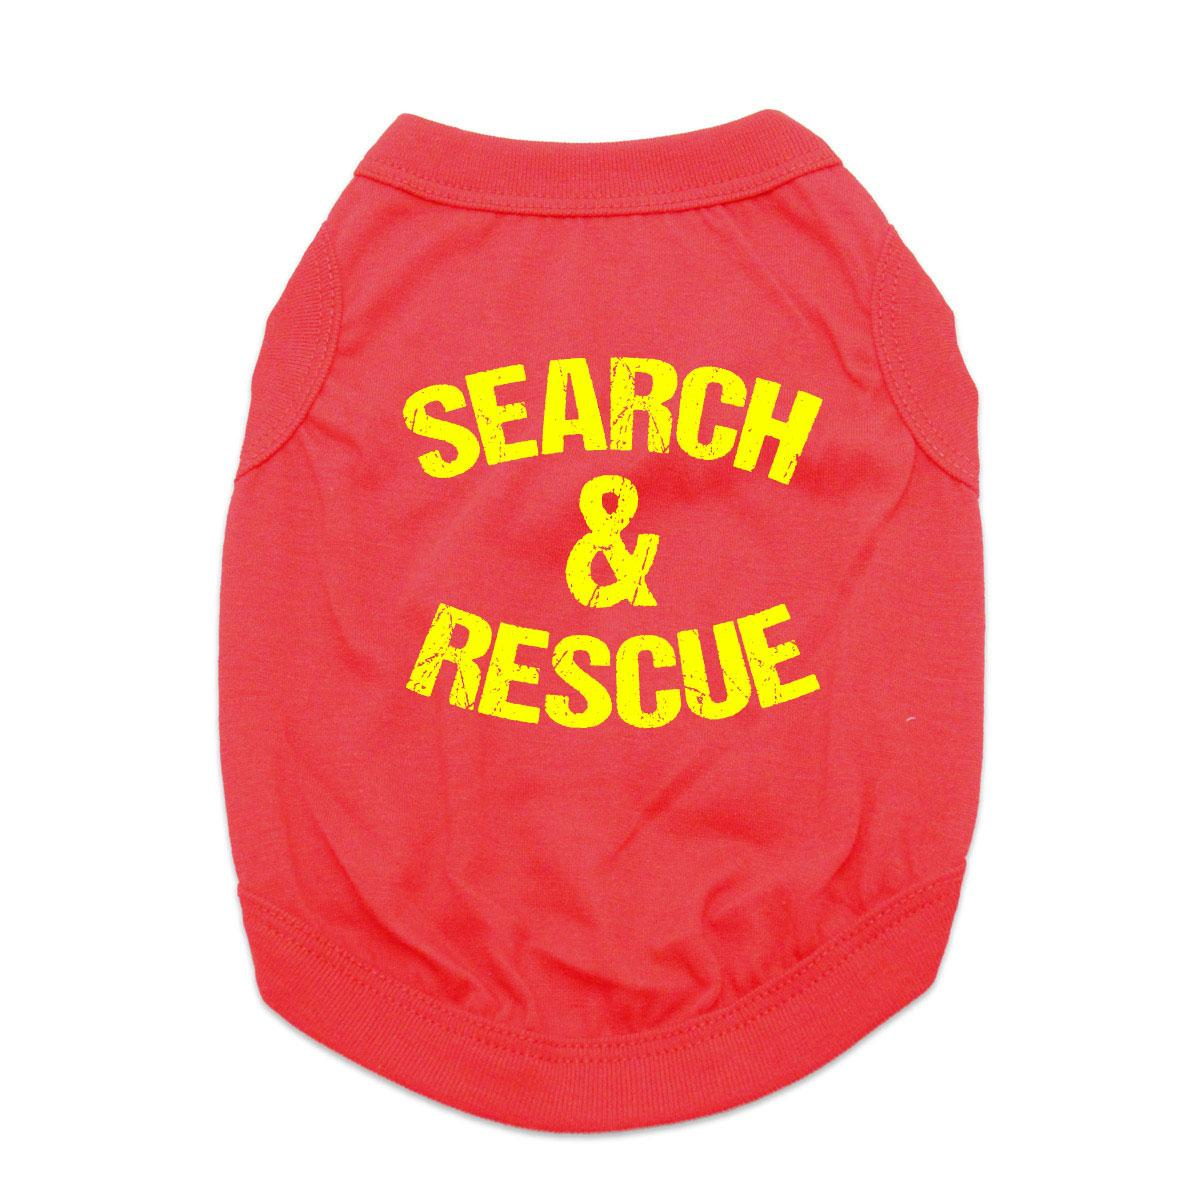 Search and Rescue Dog Shirt - Red